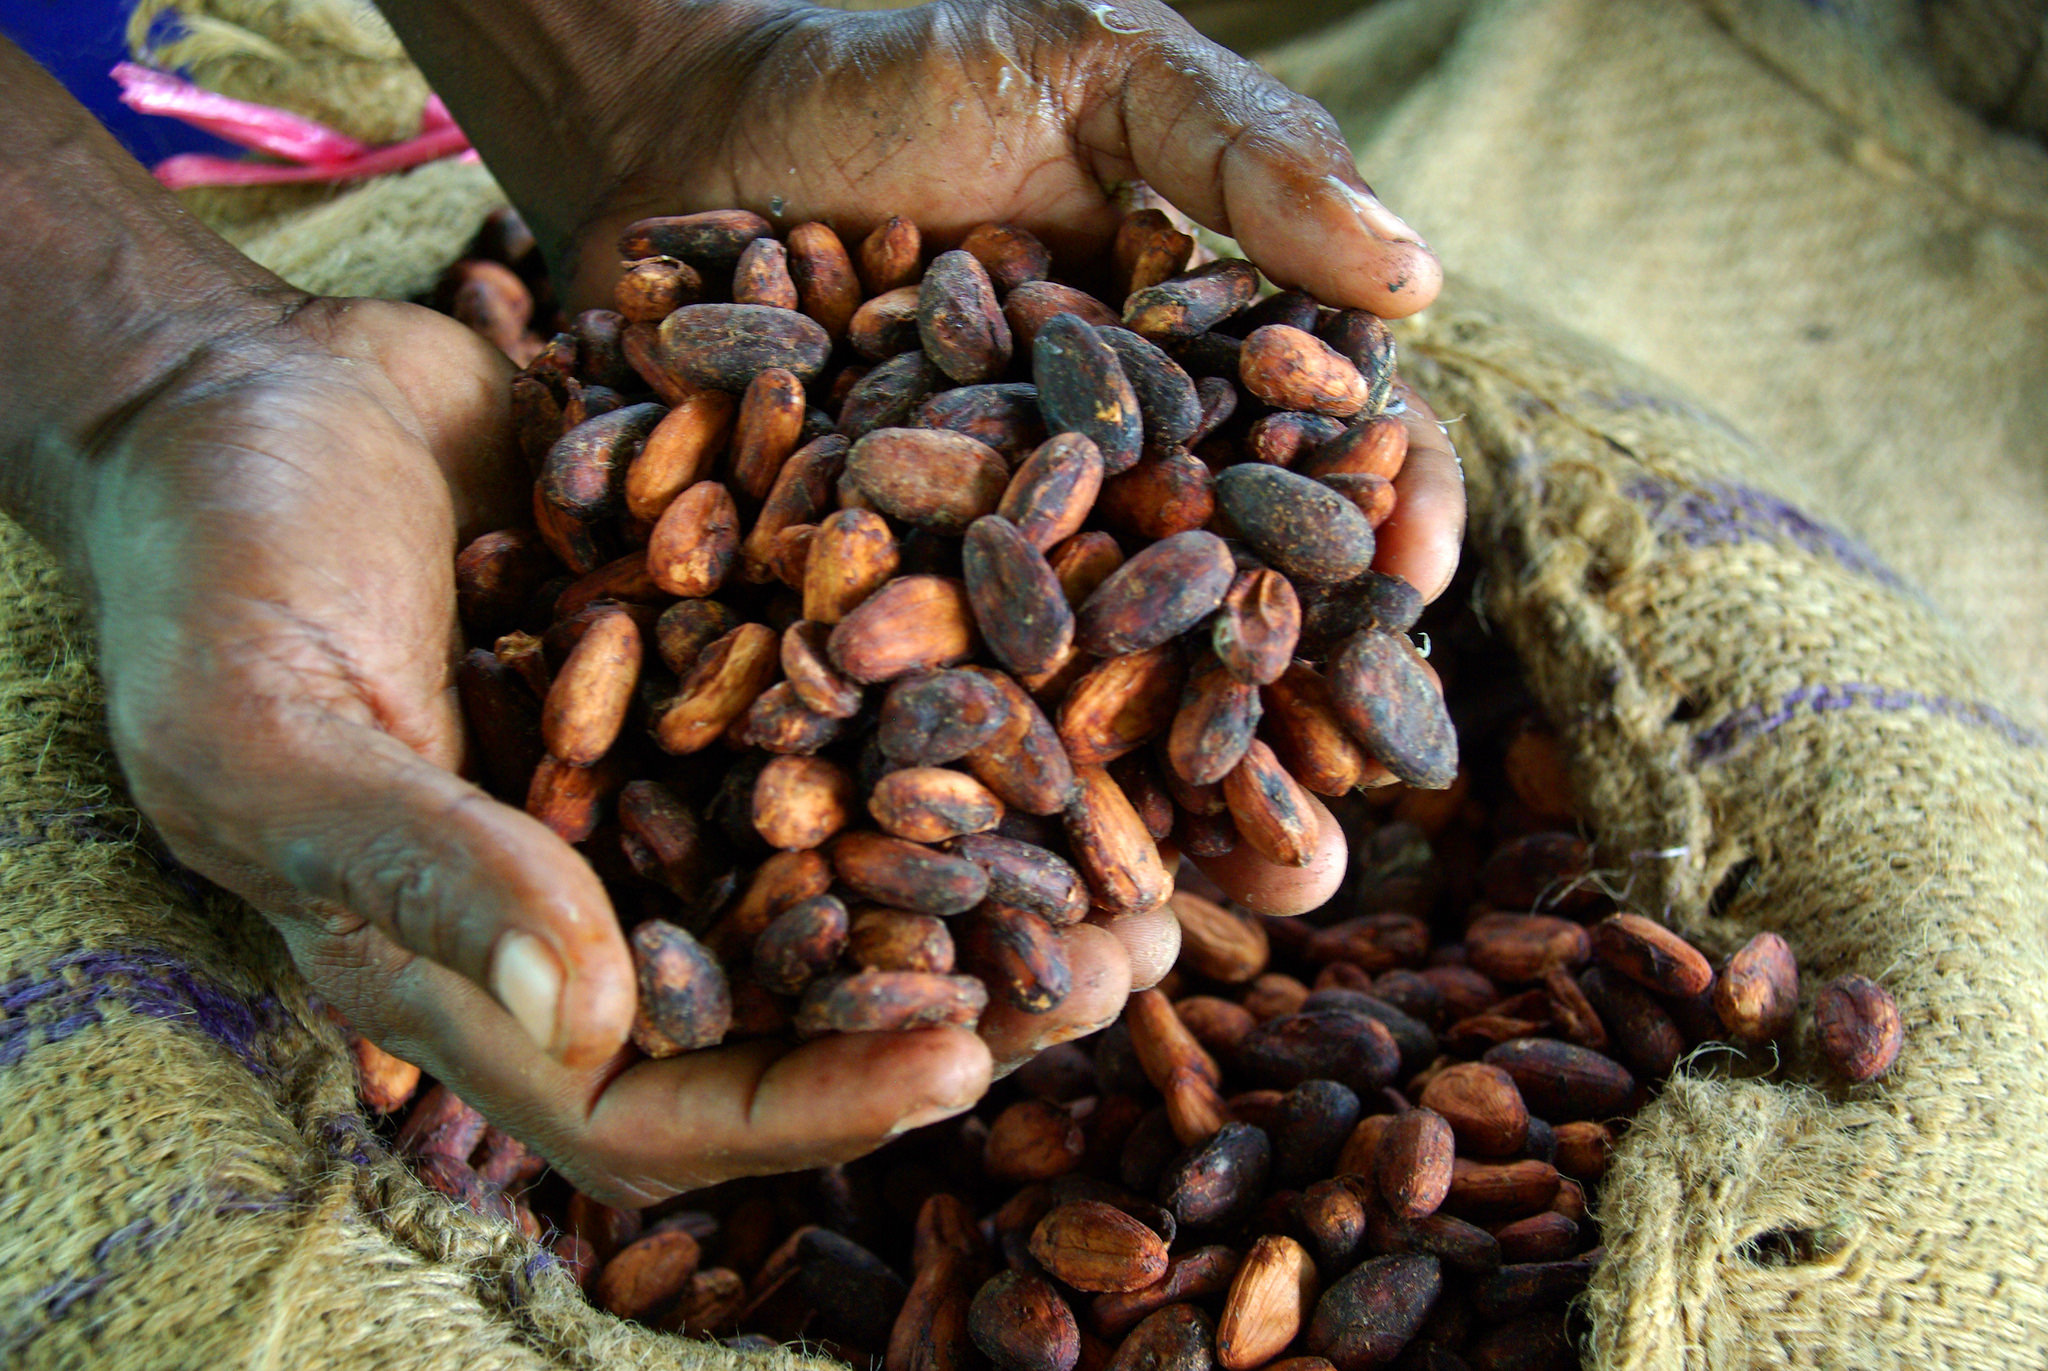 Ghana and Cote d'Ivoire push for global increase in cocoa prices - Ventures Africa